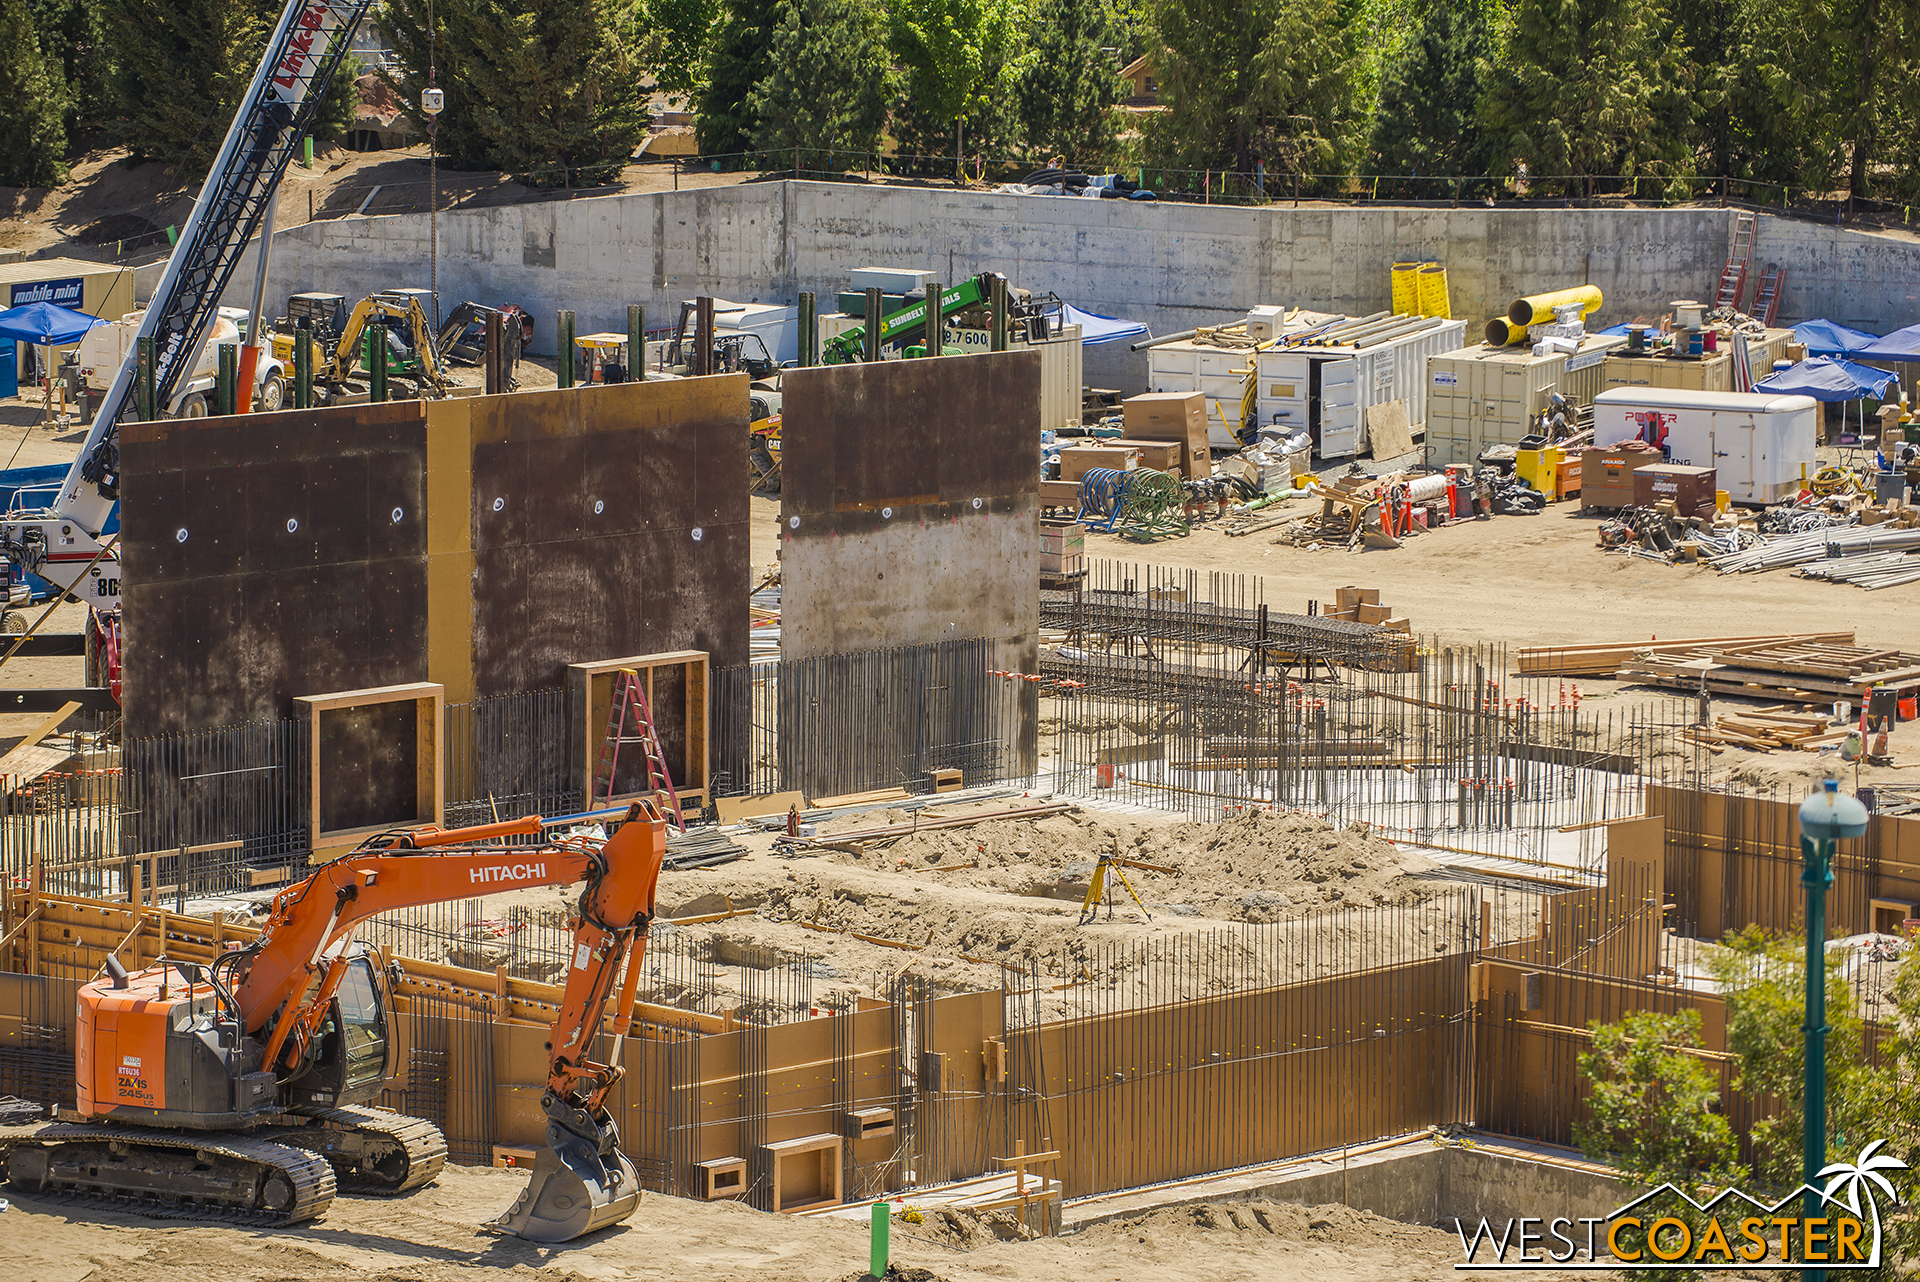 And there's still more of the building complex to pour and build!